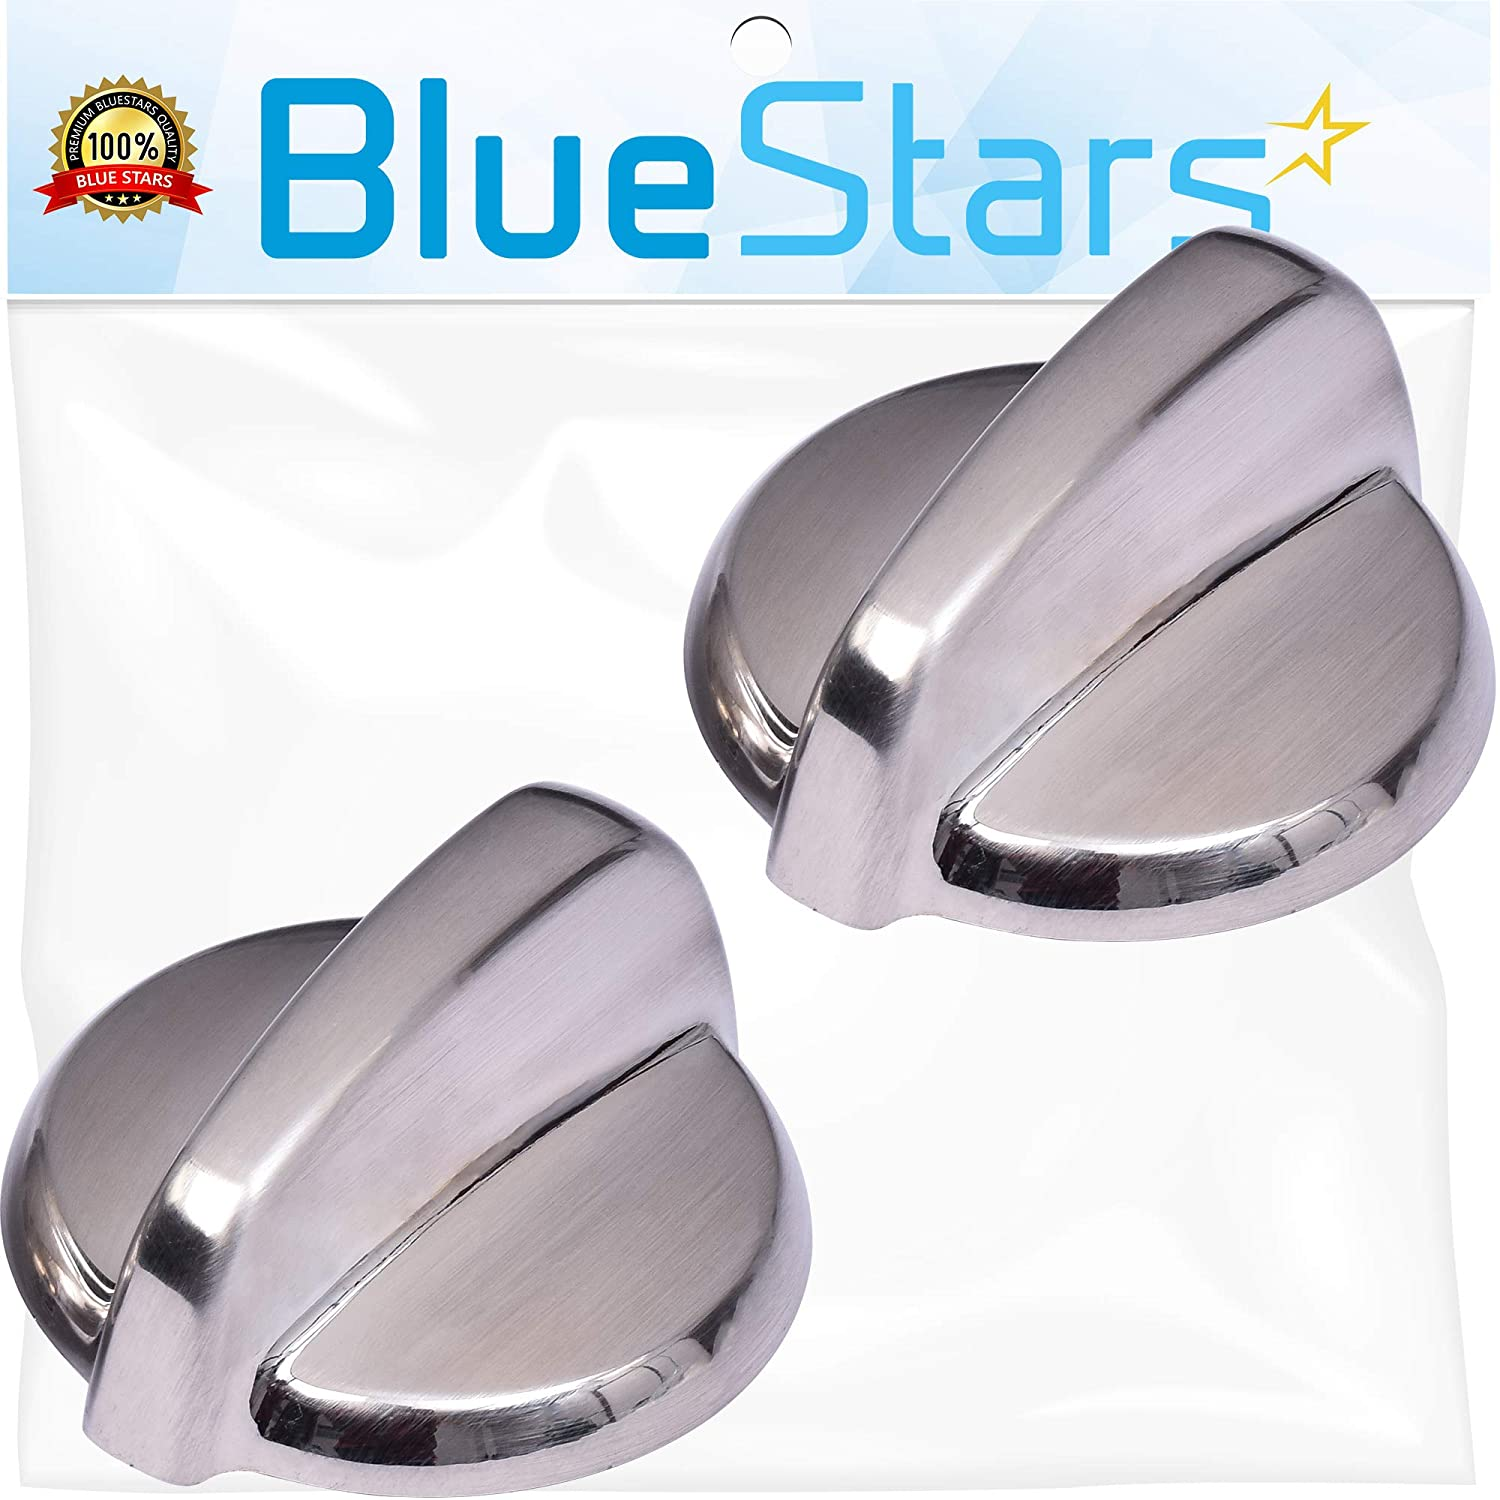 Ultra Durable WB03T10325 Range METAL Knob Replacement Part by Blue Stars – Exact Fit For General Electric Ranges - Replaces AP5690210, PS3510510 - PACK OF 2